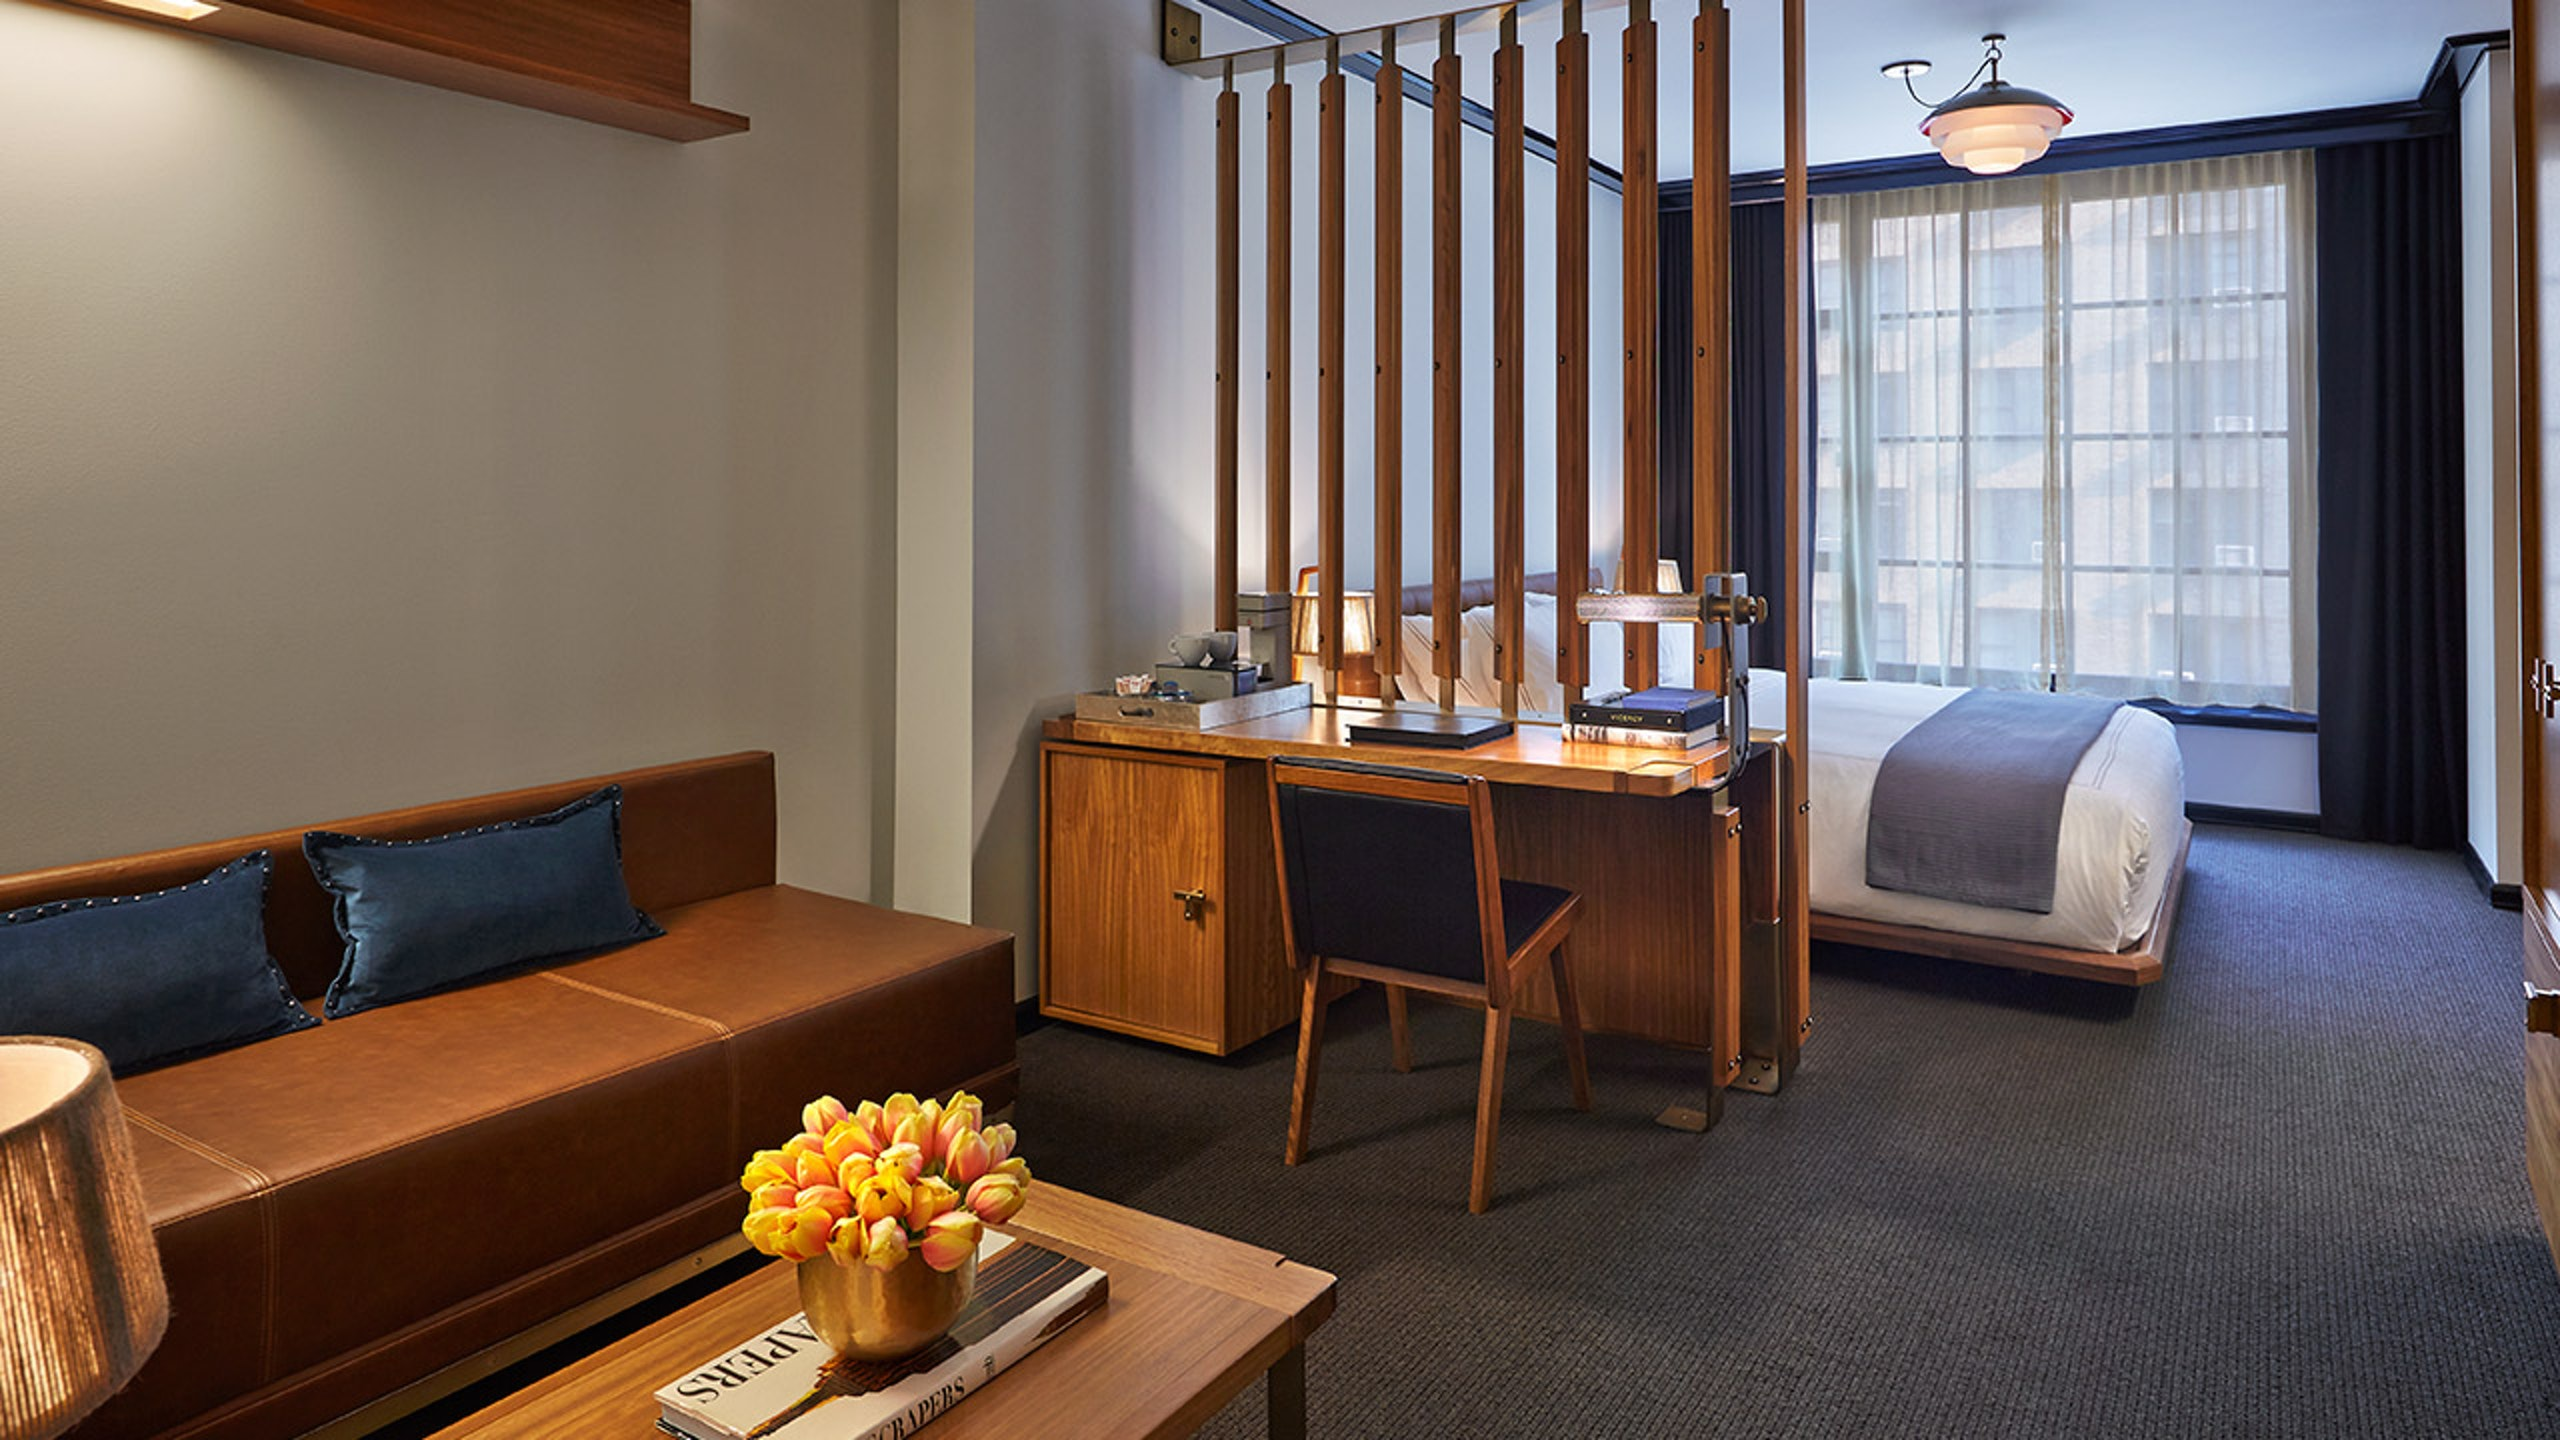 Rooms: The Anatomy Of Suites: The Difference Between Hotel Rooms